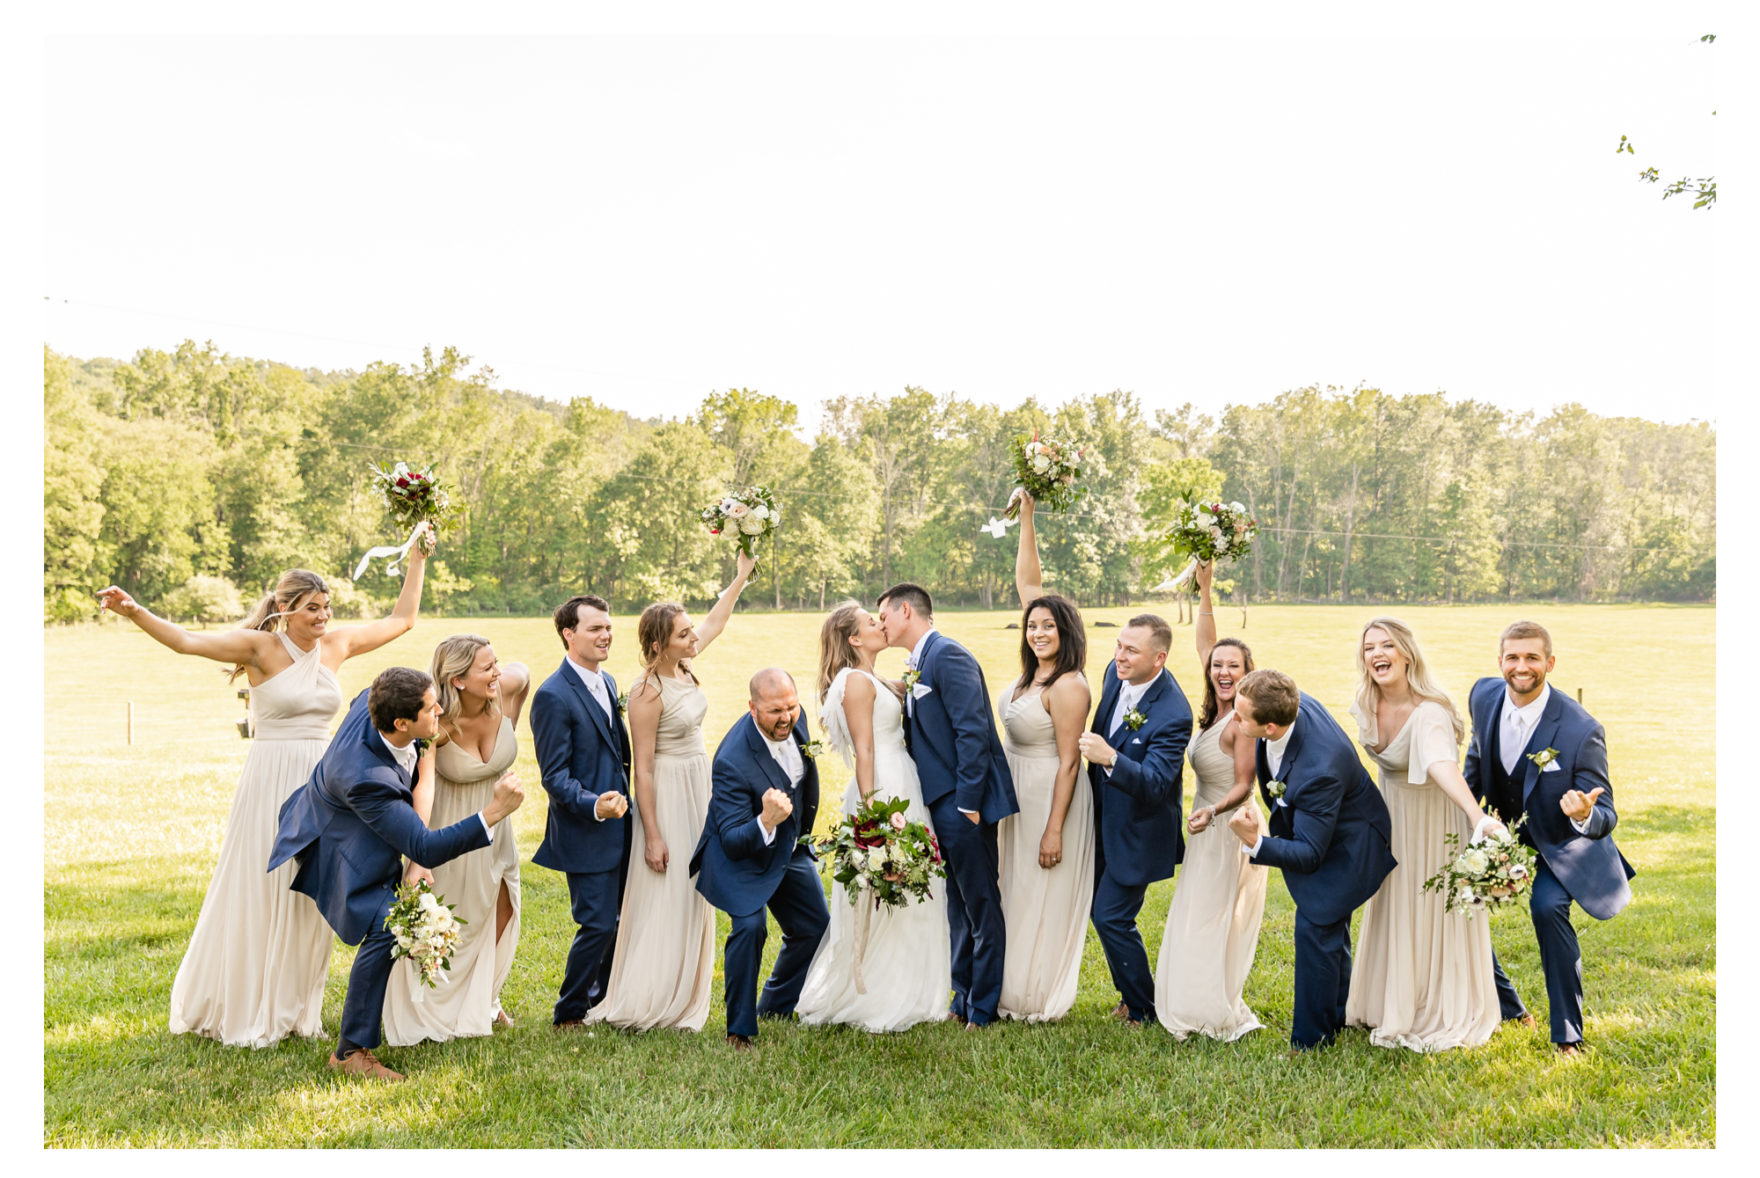 Summer wedding at a private residence farm in Westminster Carroll County Maryland. Cicadas, cows and dogs at the wedding. Pond view bridal party wedding party